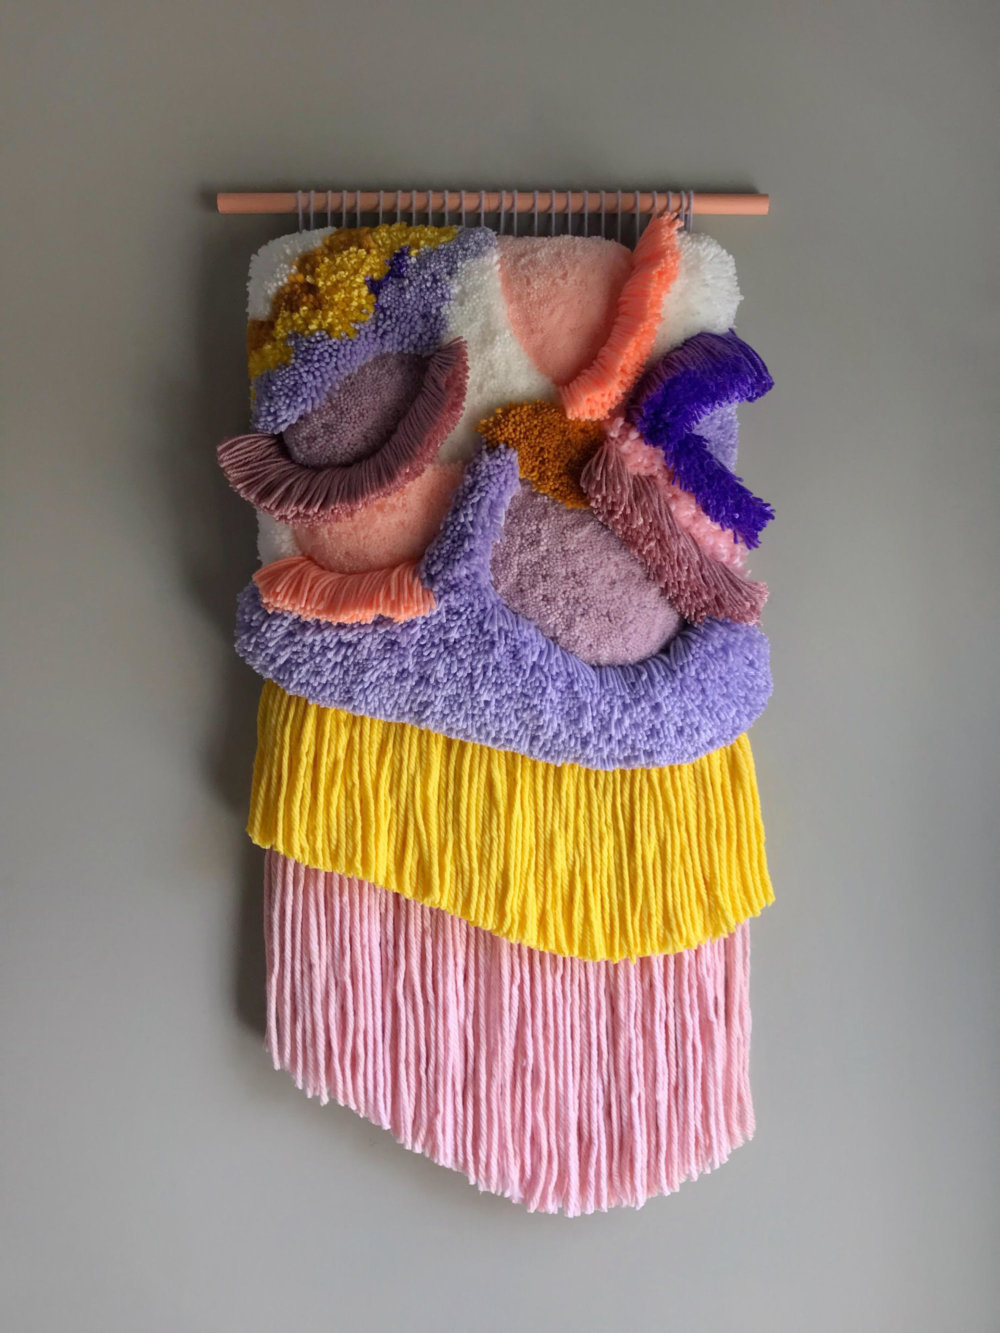 Abstract And Improvised Wall Tapestries With Vibrant Colors By Judit Just Antelo 8